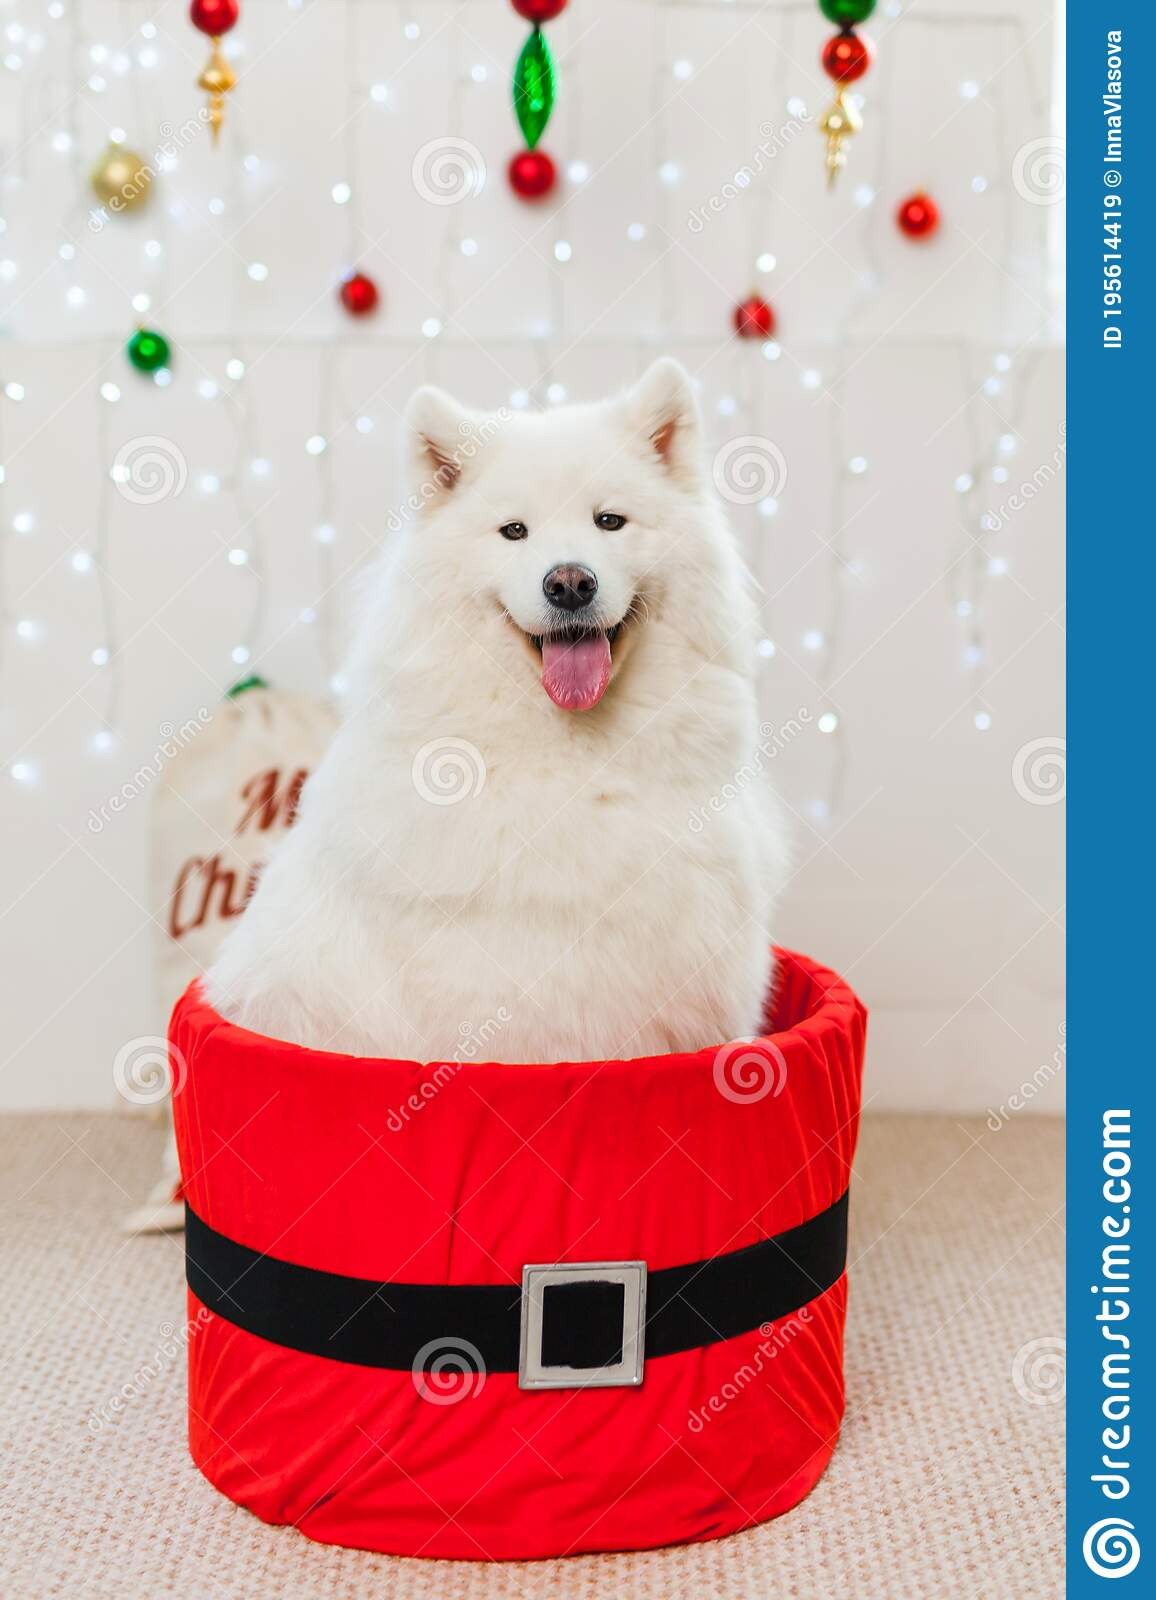 Cute Samoyed Dog In A Red Gift Box For Christmas Stock Image Image Of Dachshund Pedigreed 195614419